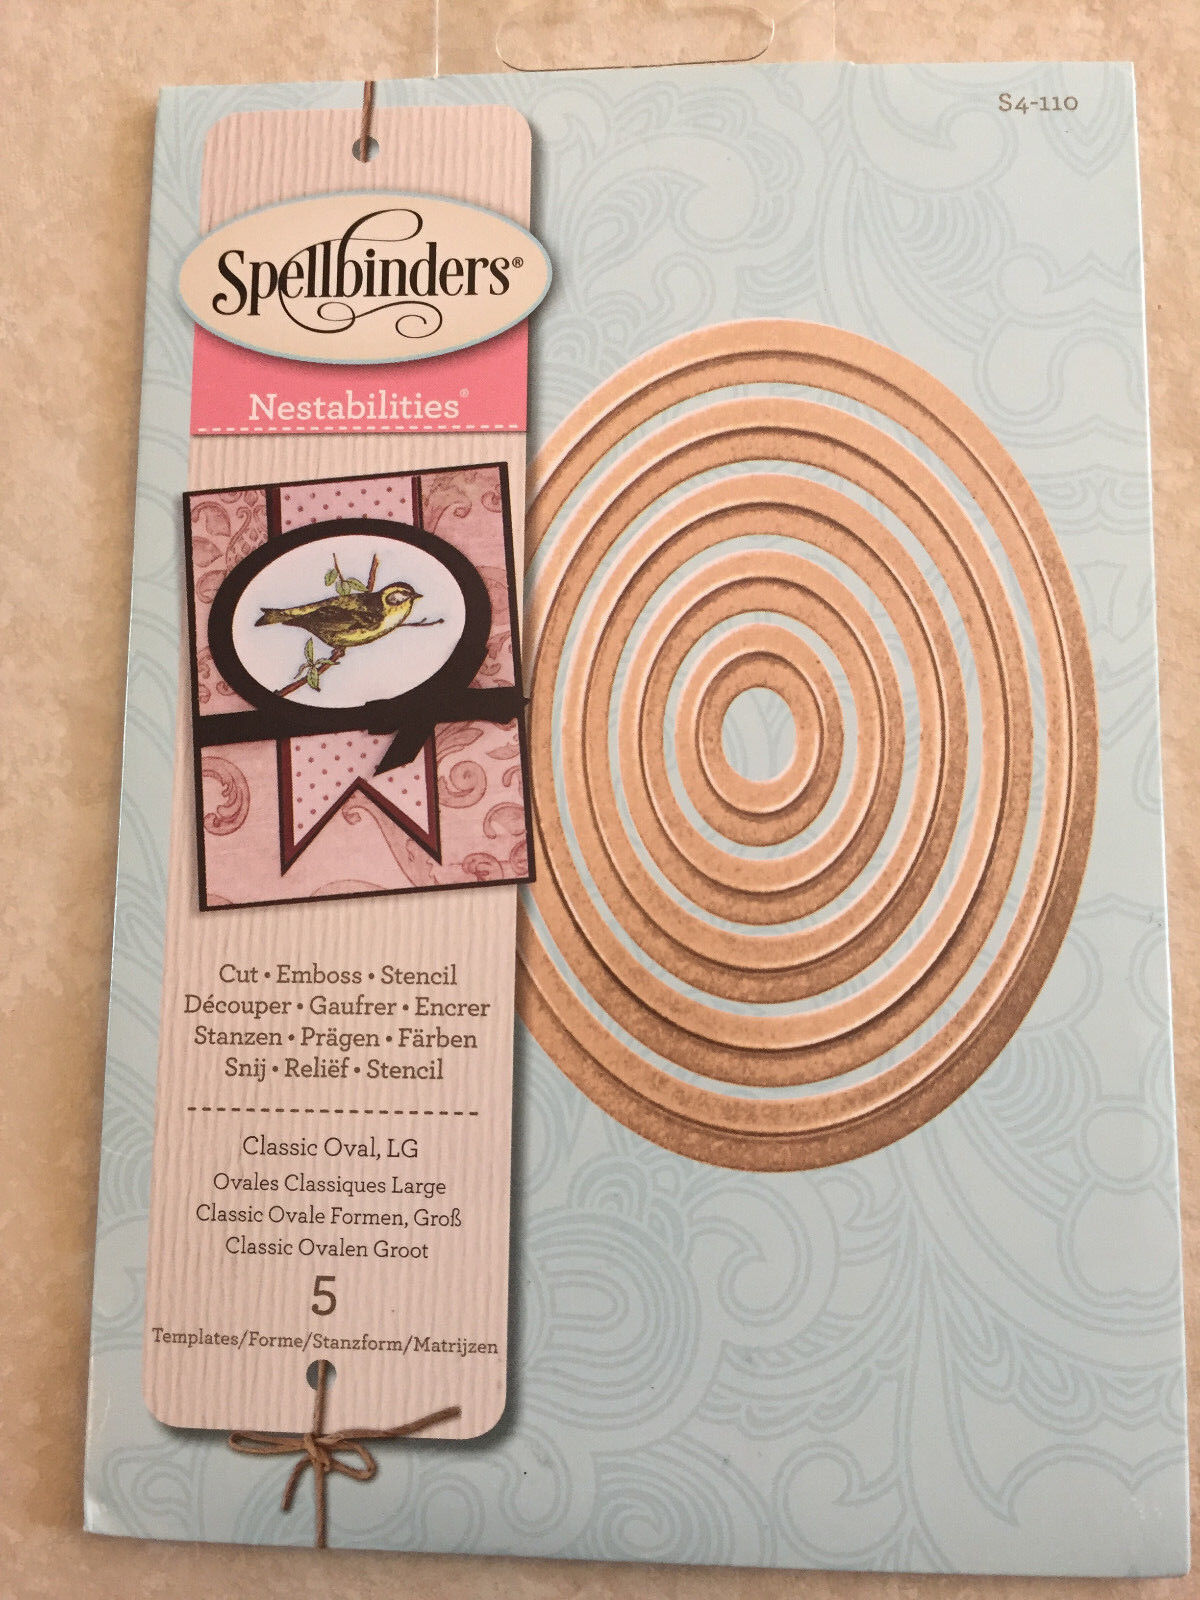 Spellbinders Nestabilities Dies-Deckled Rectangles Large